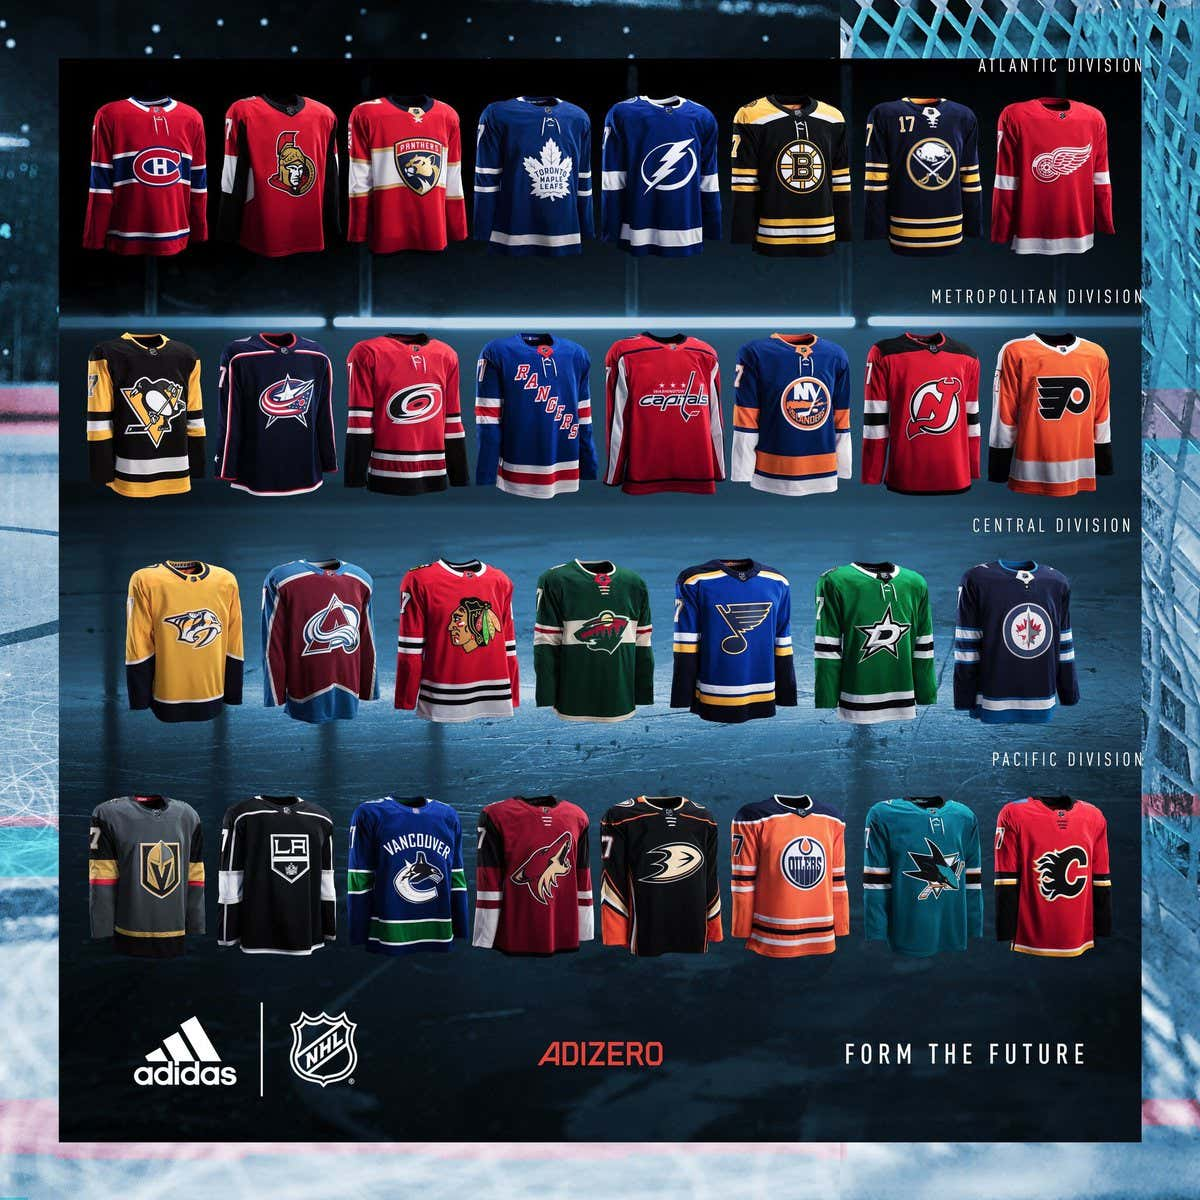 Adidas released all 31 home sweaters for the 2017-18 NHL season last night.  Some of them are good dd022750e1a